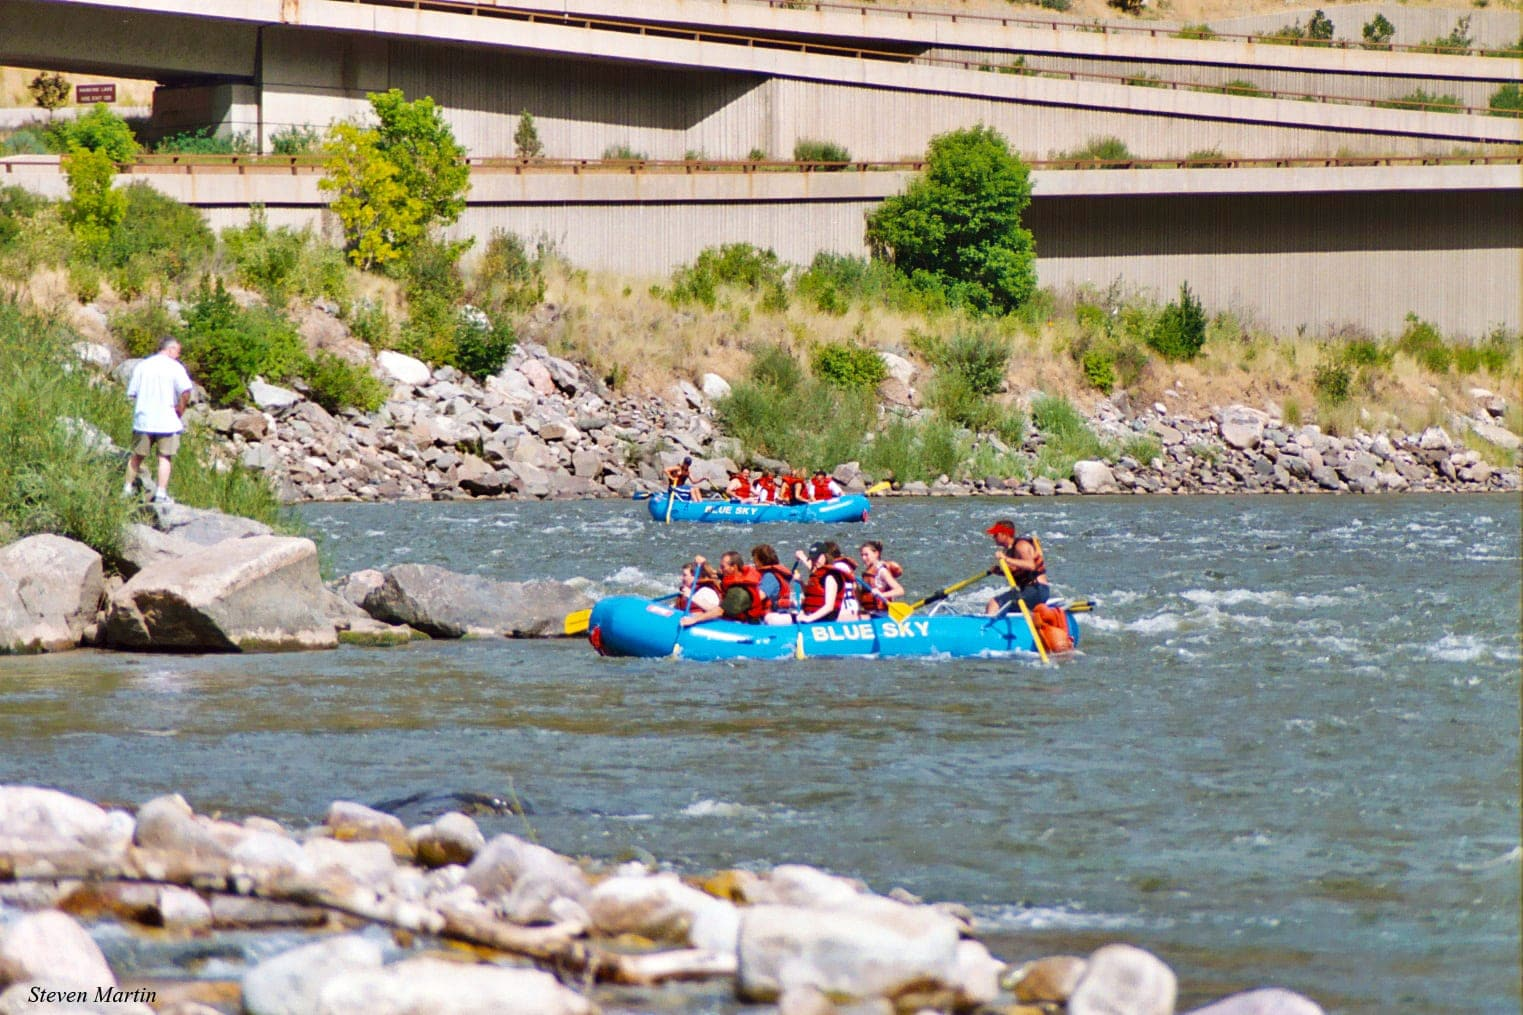 Rafts Land in Glenwood Canyon on Colorado River